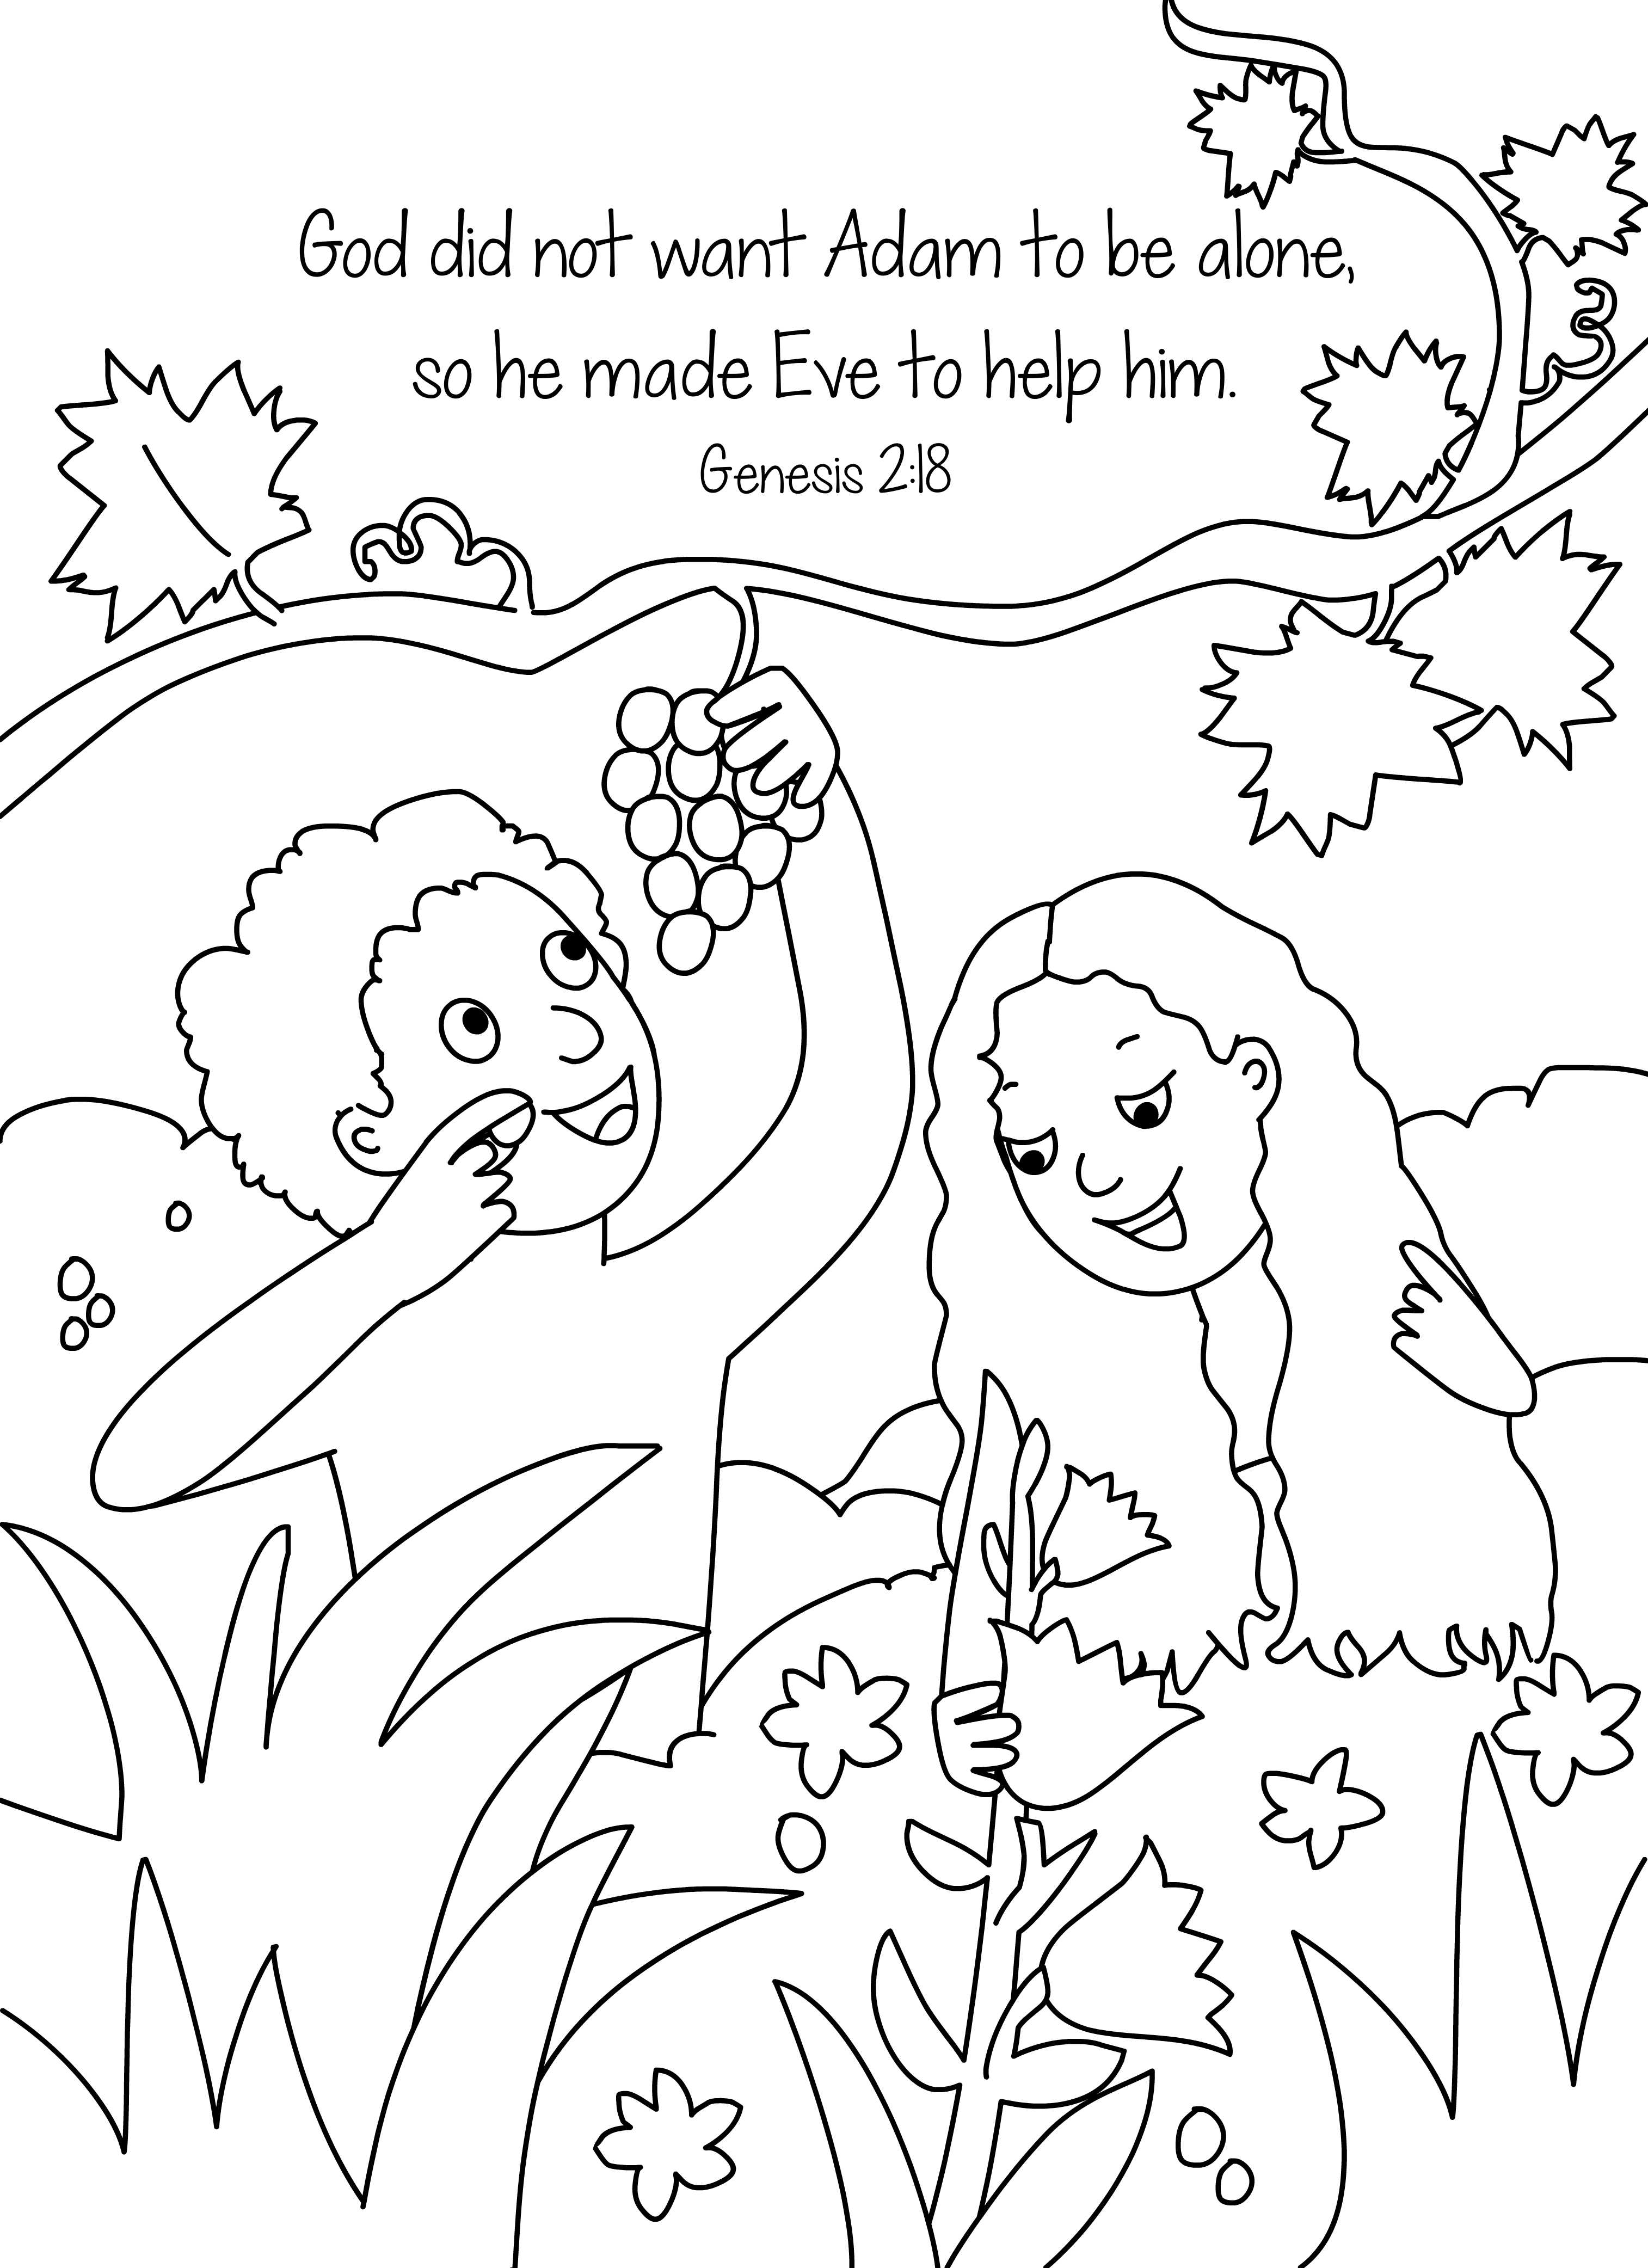 coloring adam and eve adam and eve coloring pages adam and eve sunday school and adam eve coloring